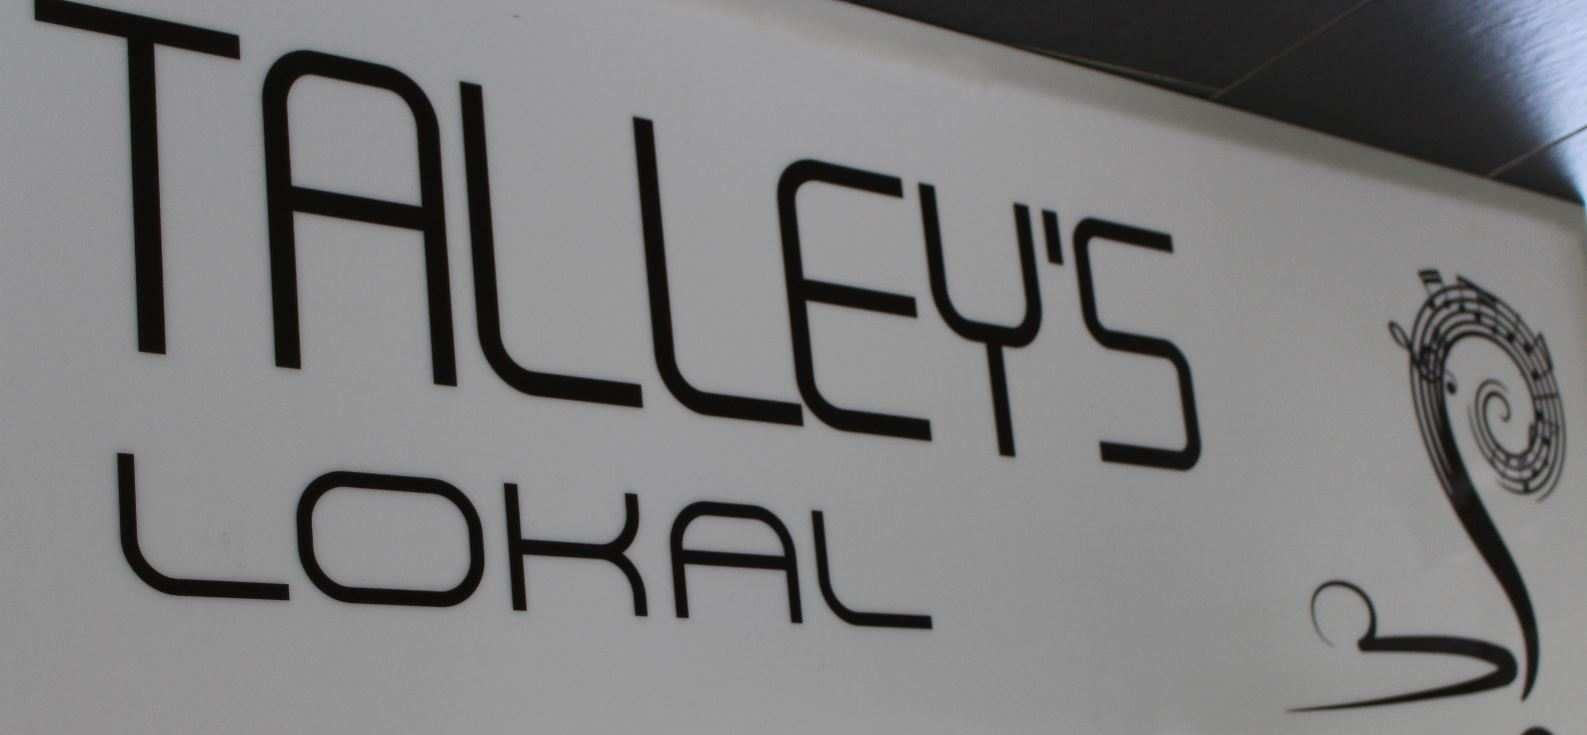 talleys_logo